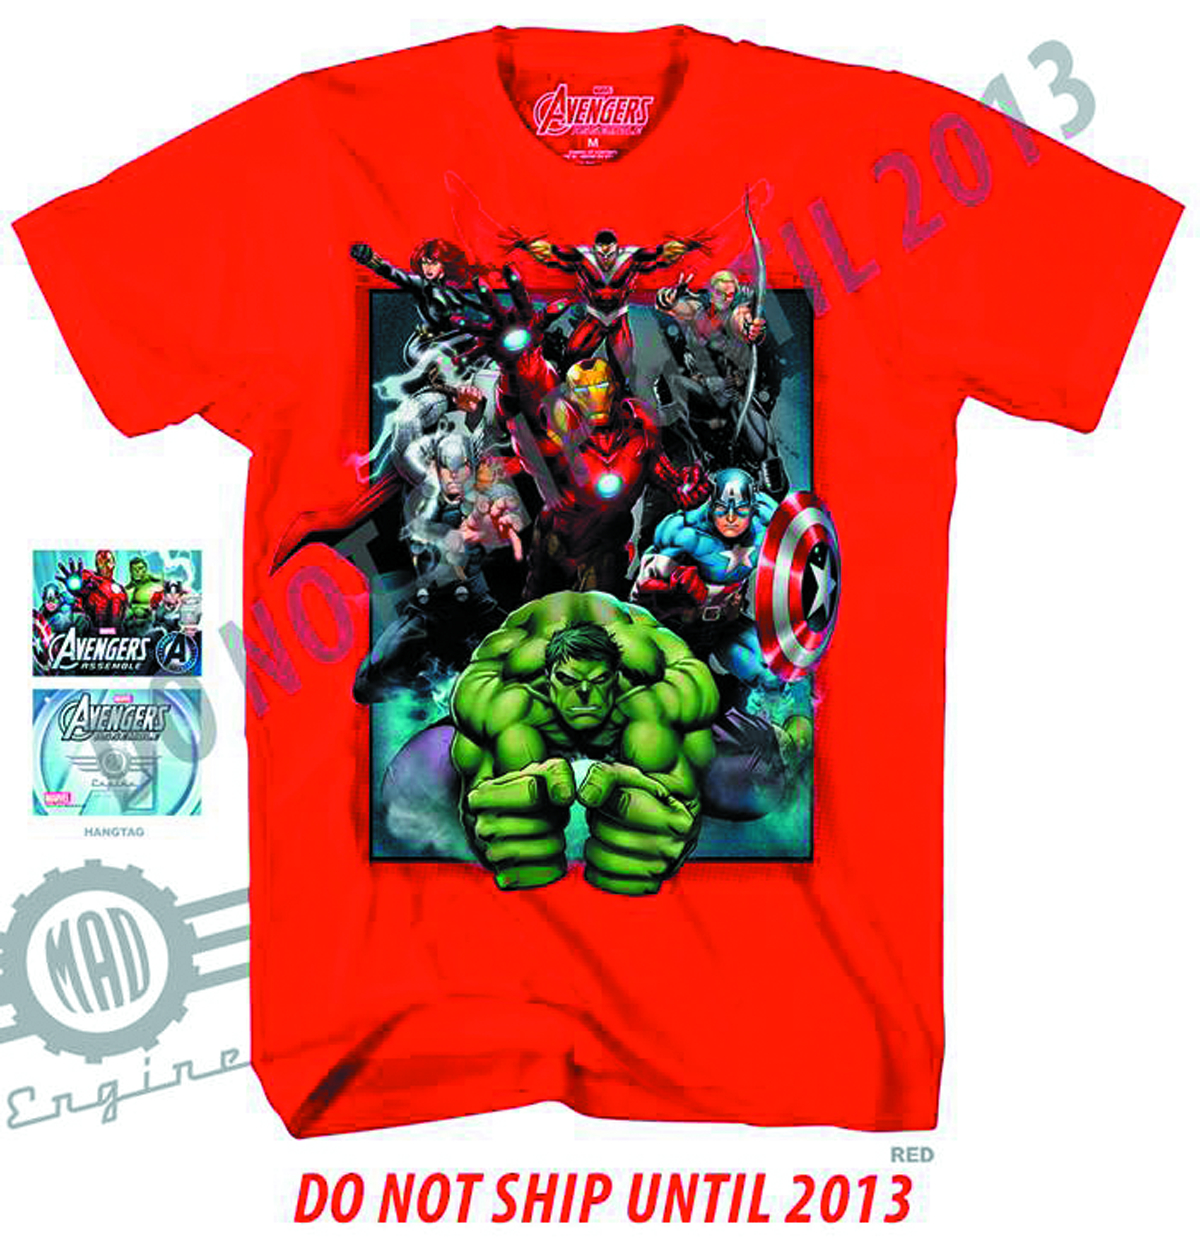 AVENGERS ASSEMBLE BOXED IN RED T/S XL